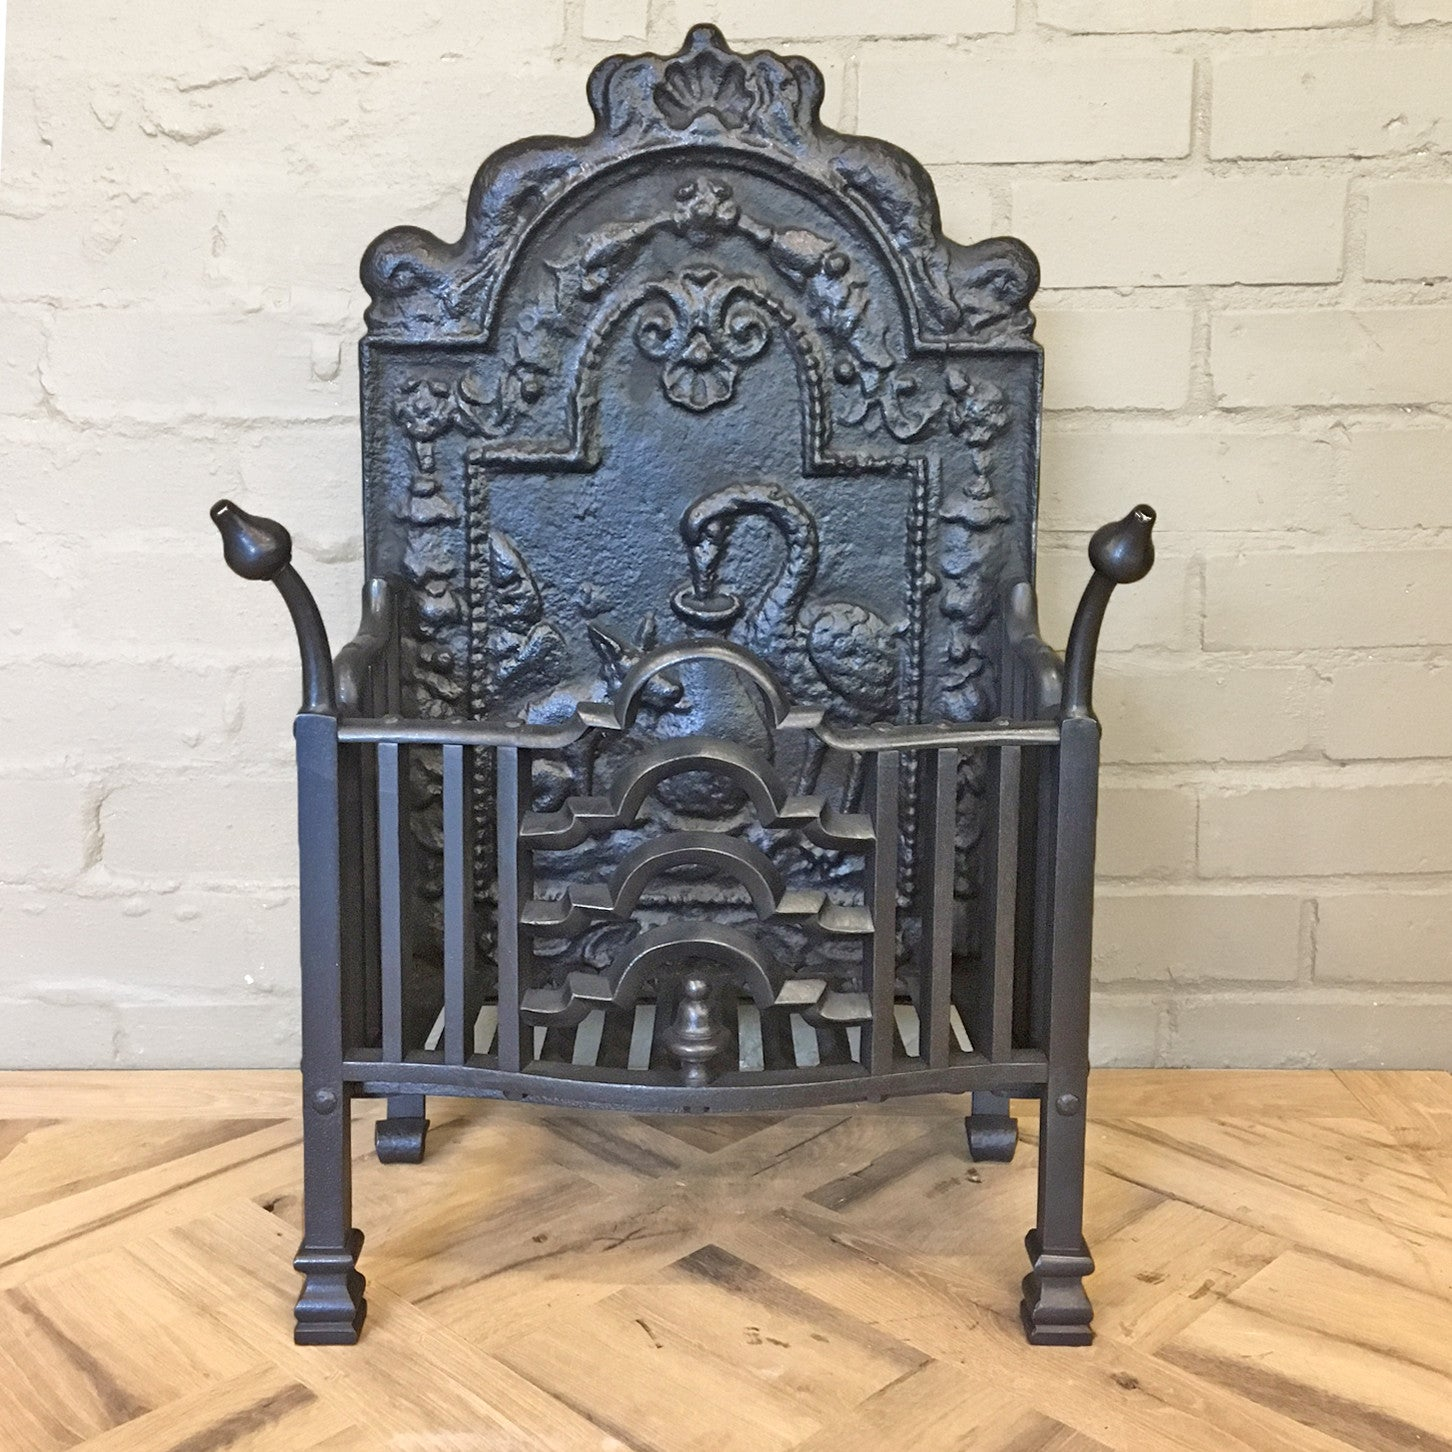 Twentieth Century Cast Iron Fire Basket - architectural-forum